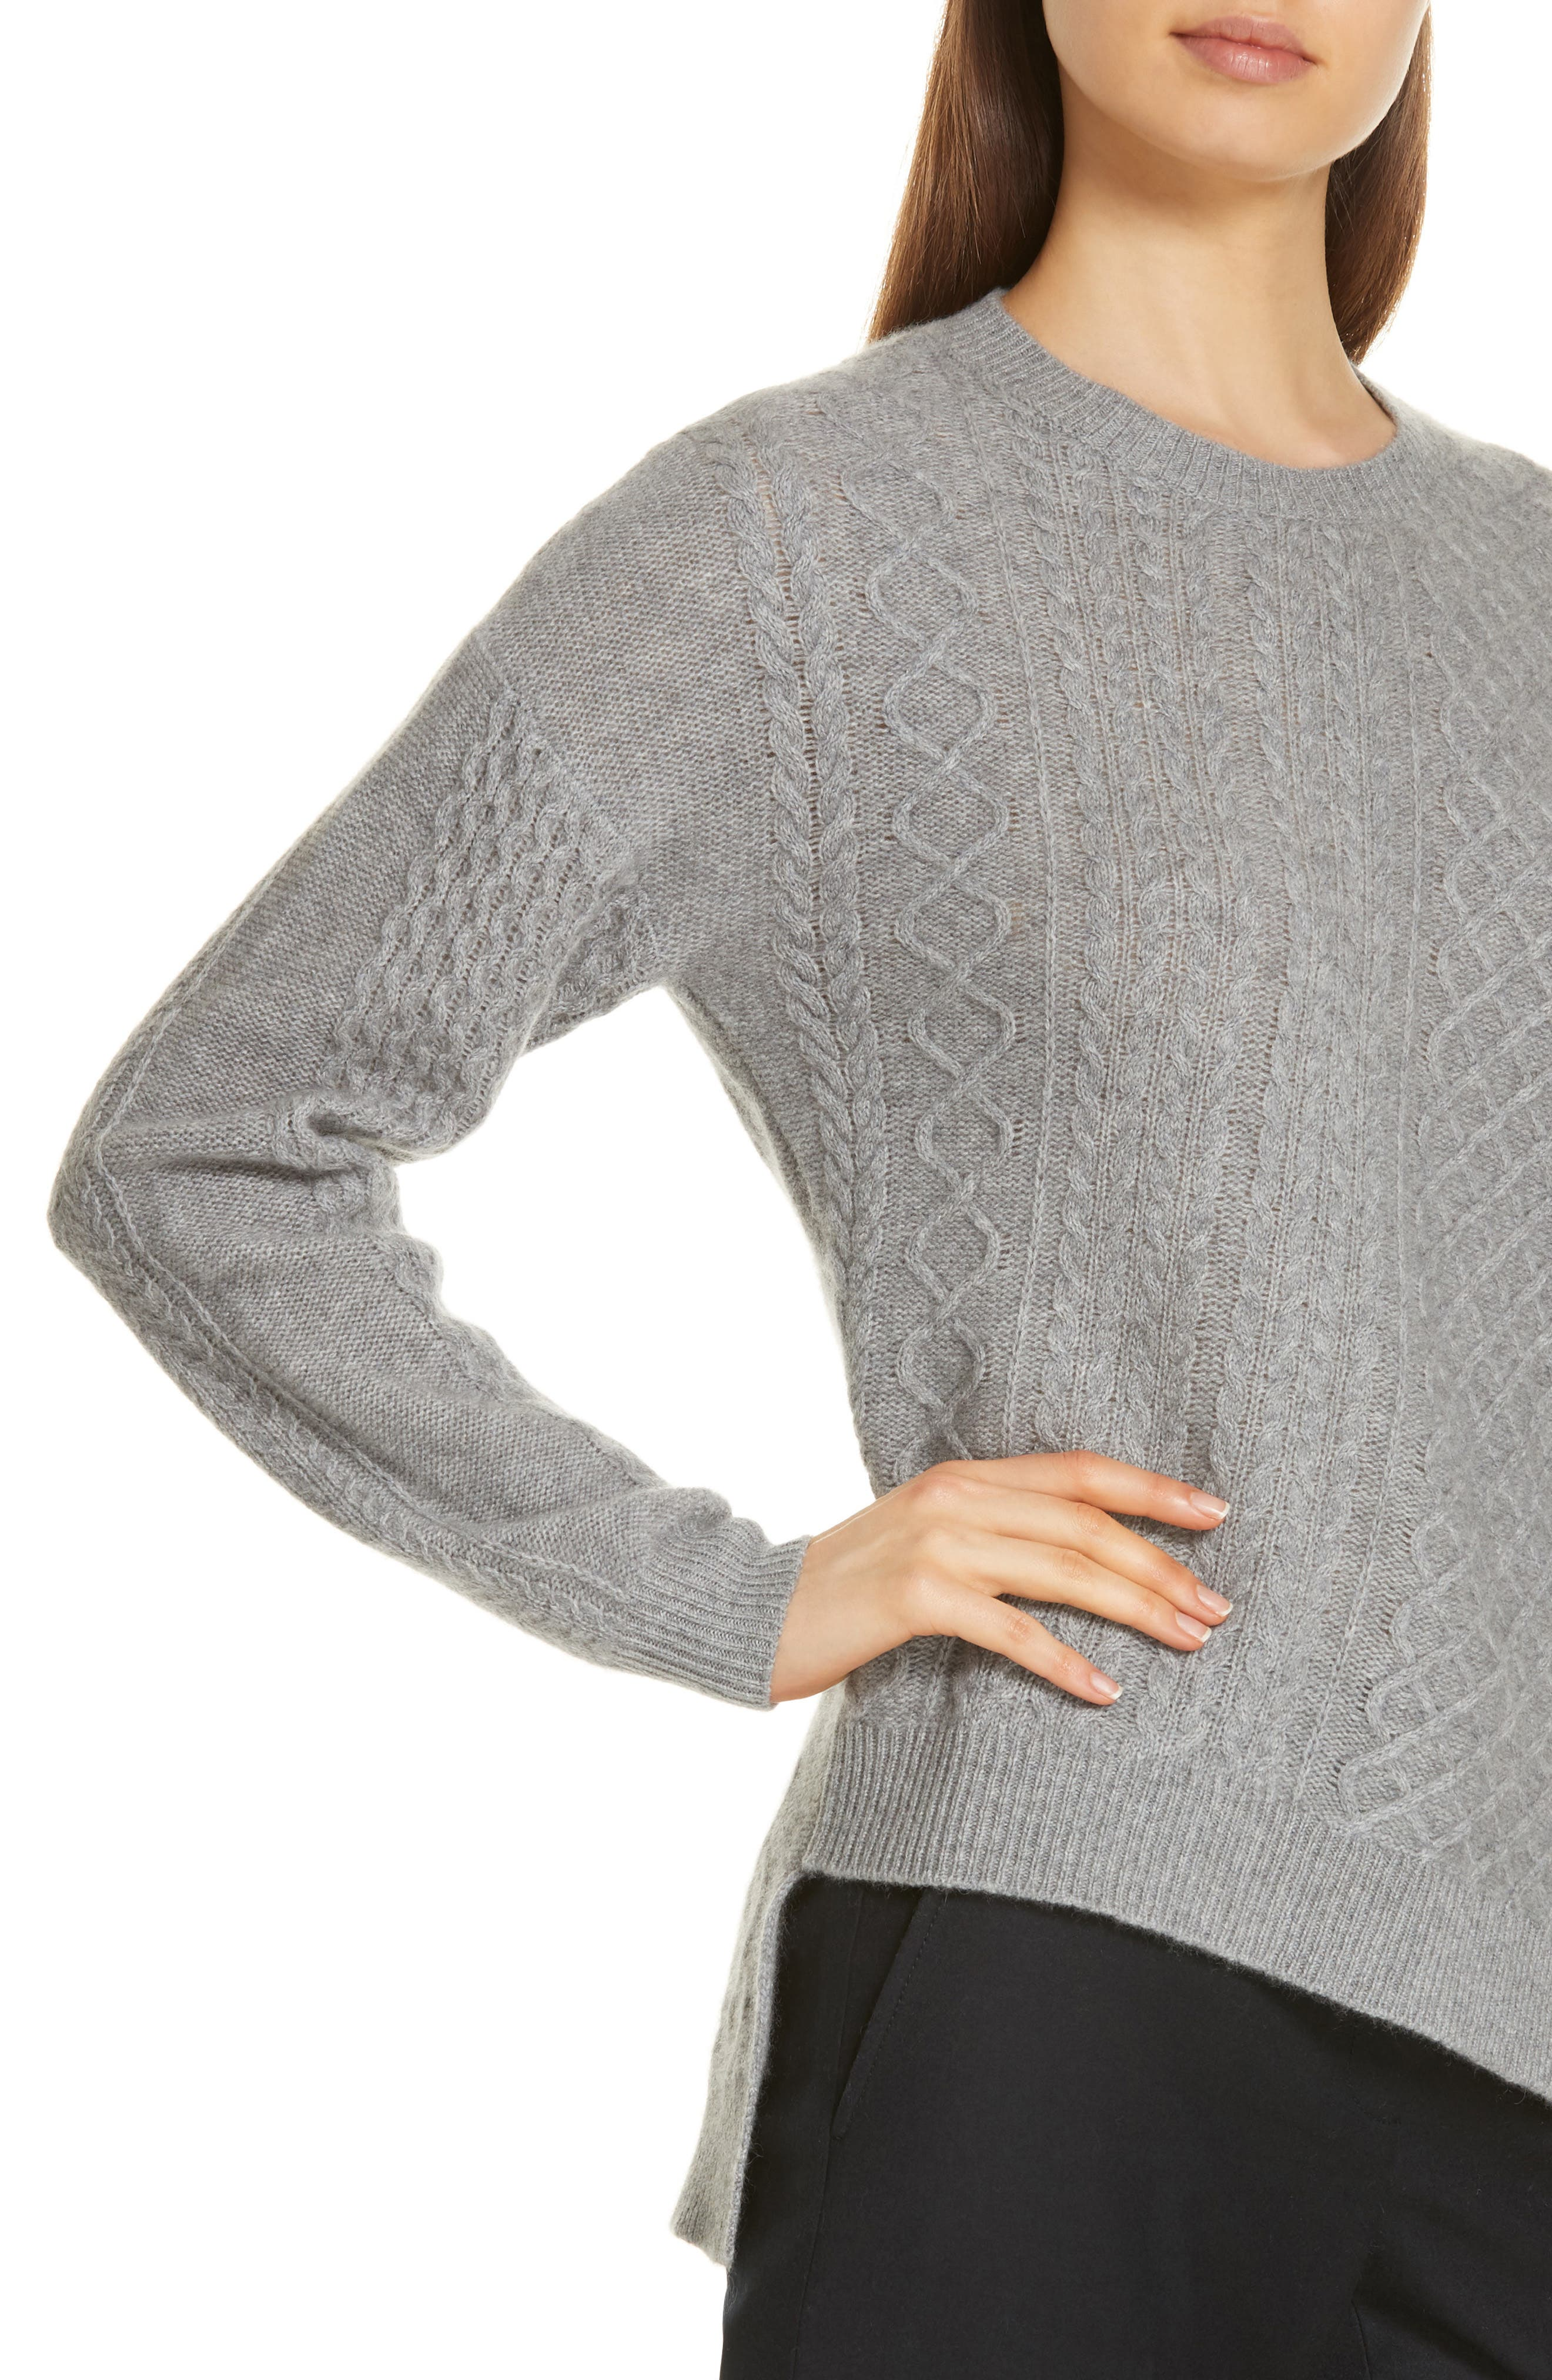 Cable Mix Asymmetrical Cashmere Sweater,                             Alternate thumbnail 4, color,                             GREY FILIGREE HR